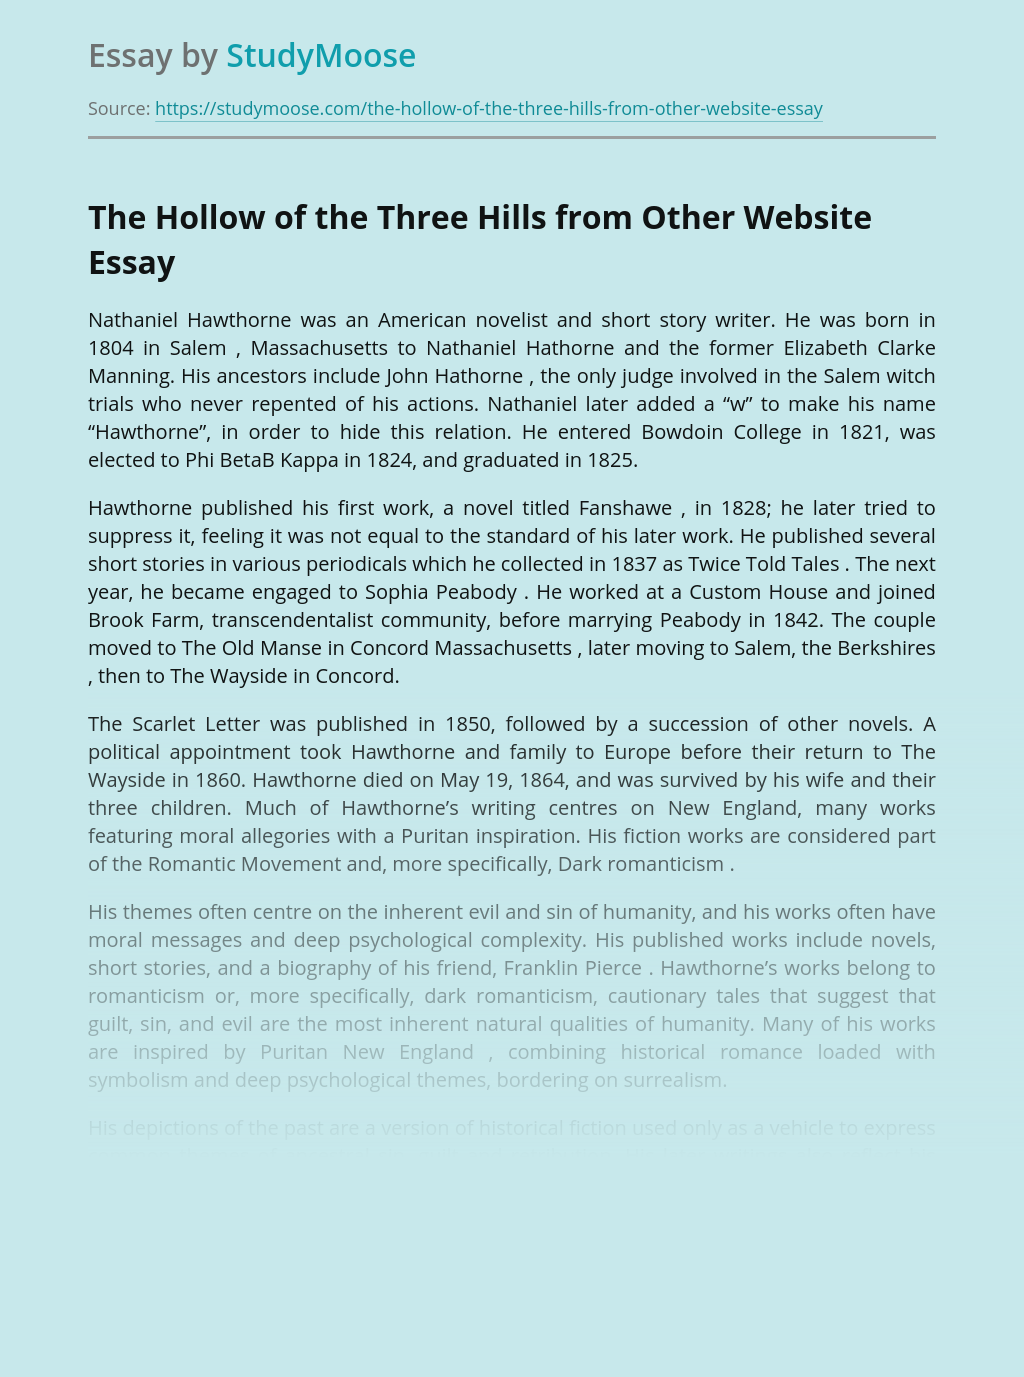 The Hollow of the Three Hills from Other Website